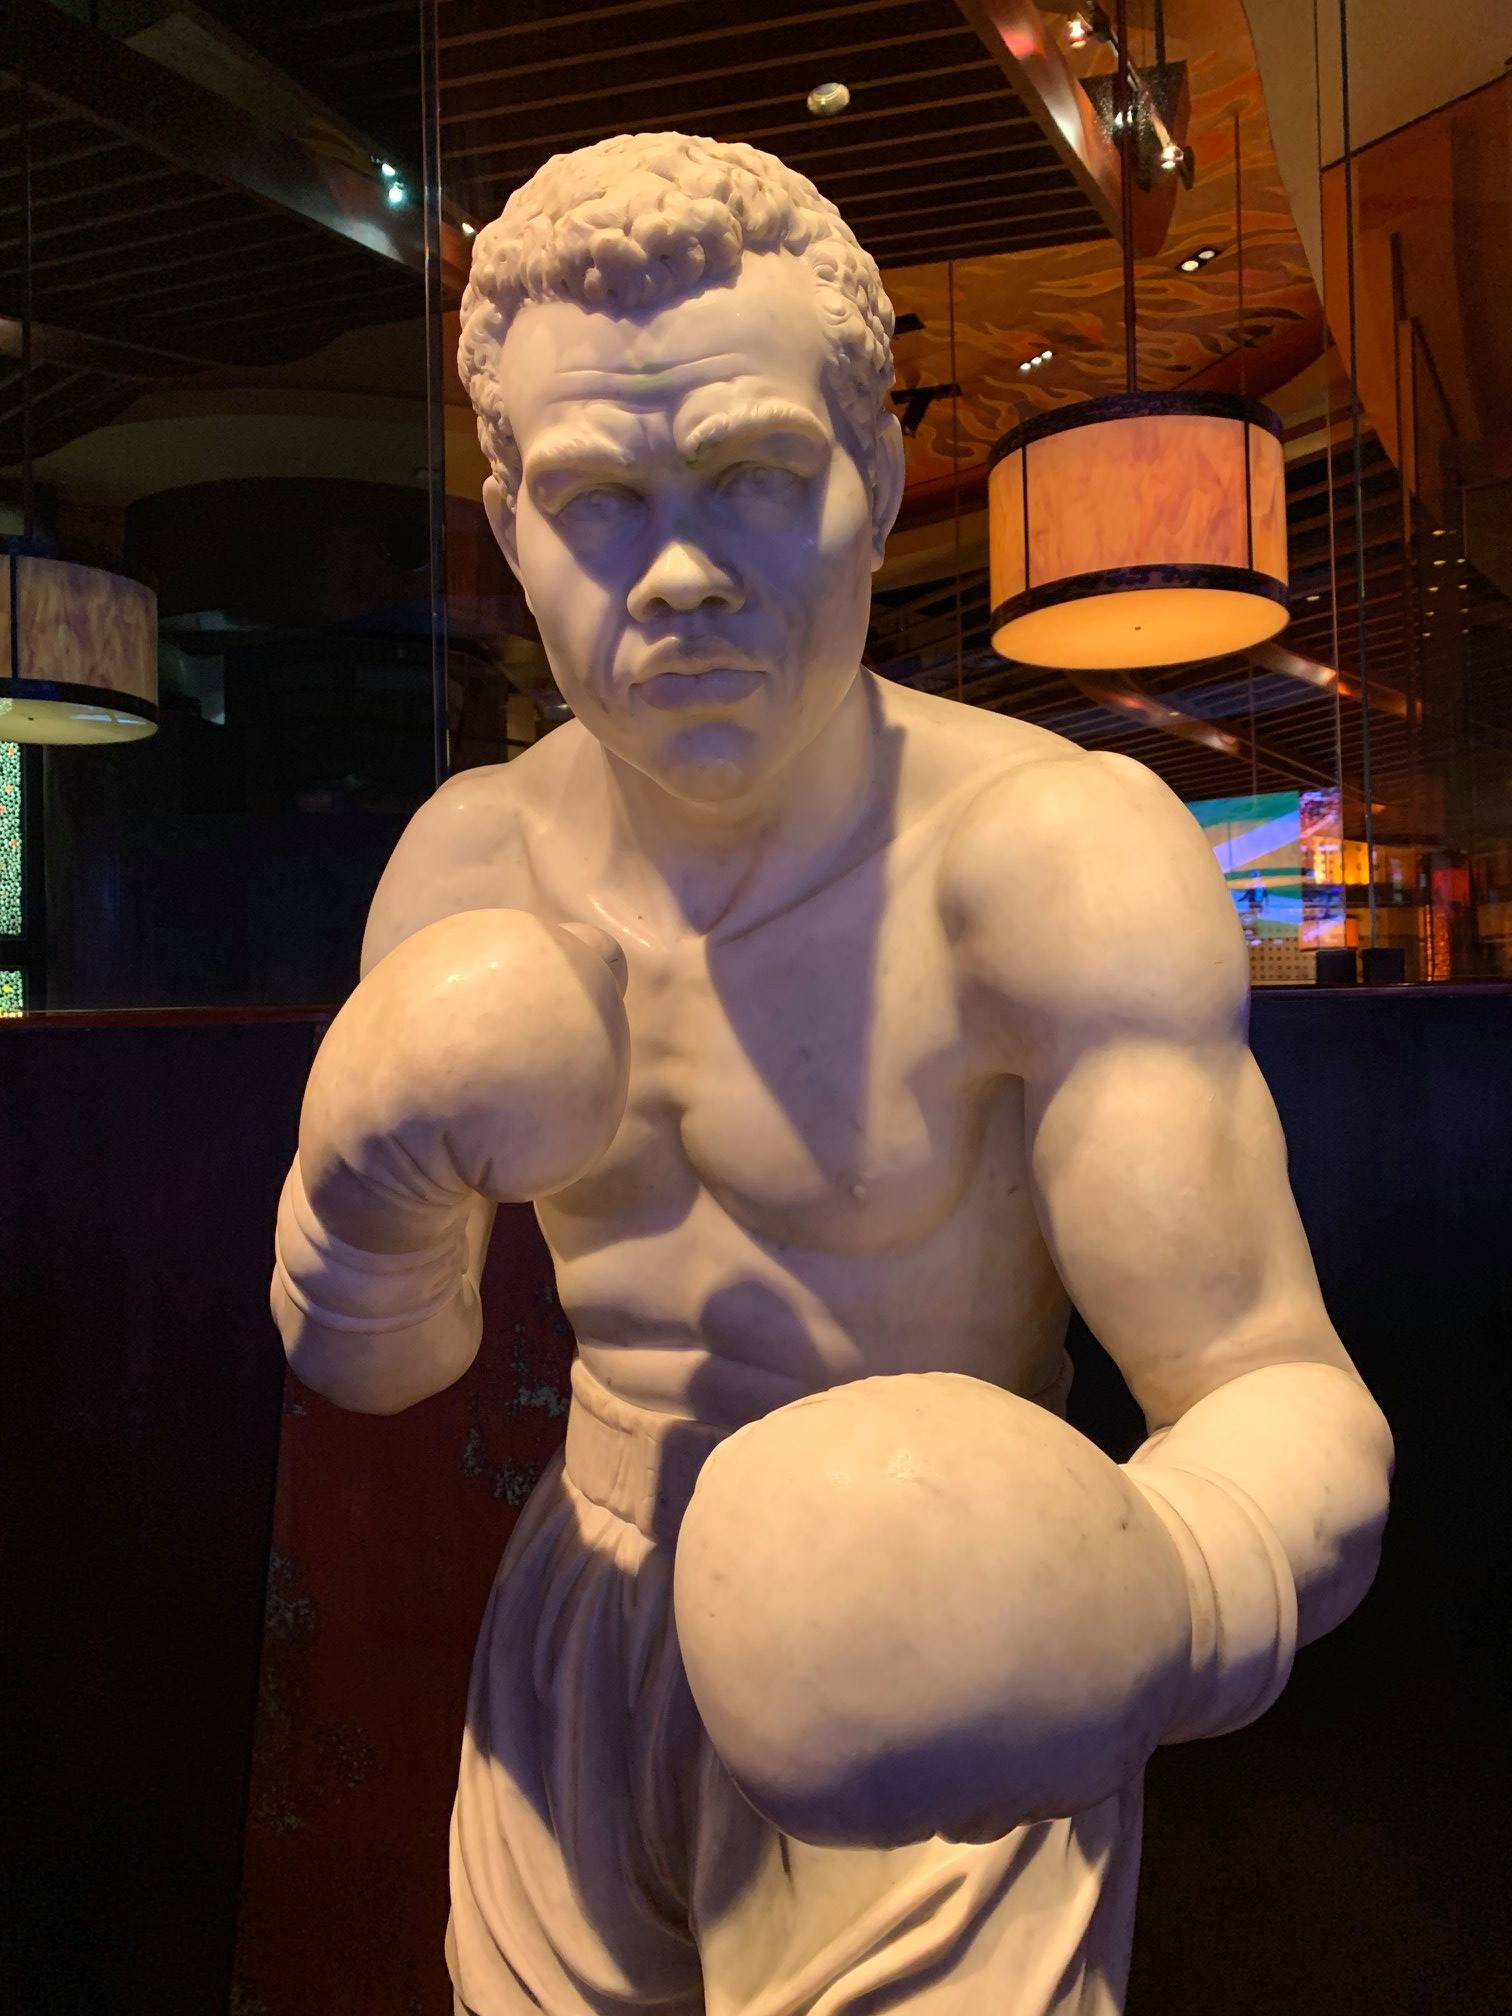 Photograph of boxer statue in hotel lobby